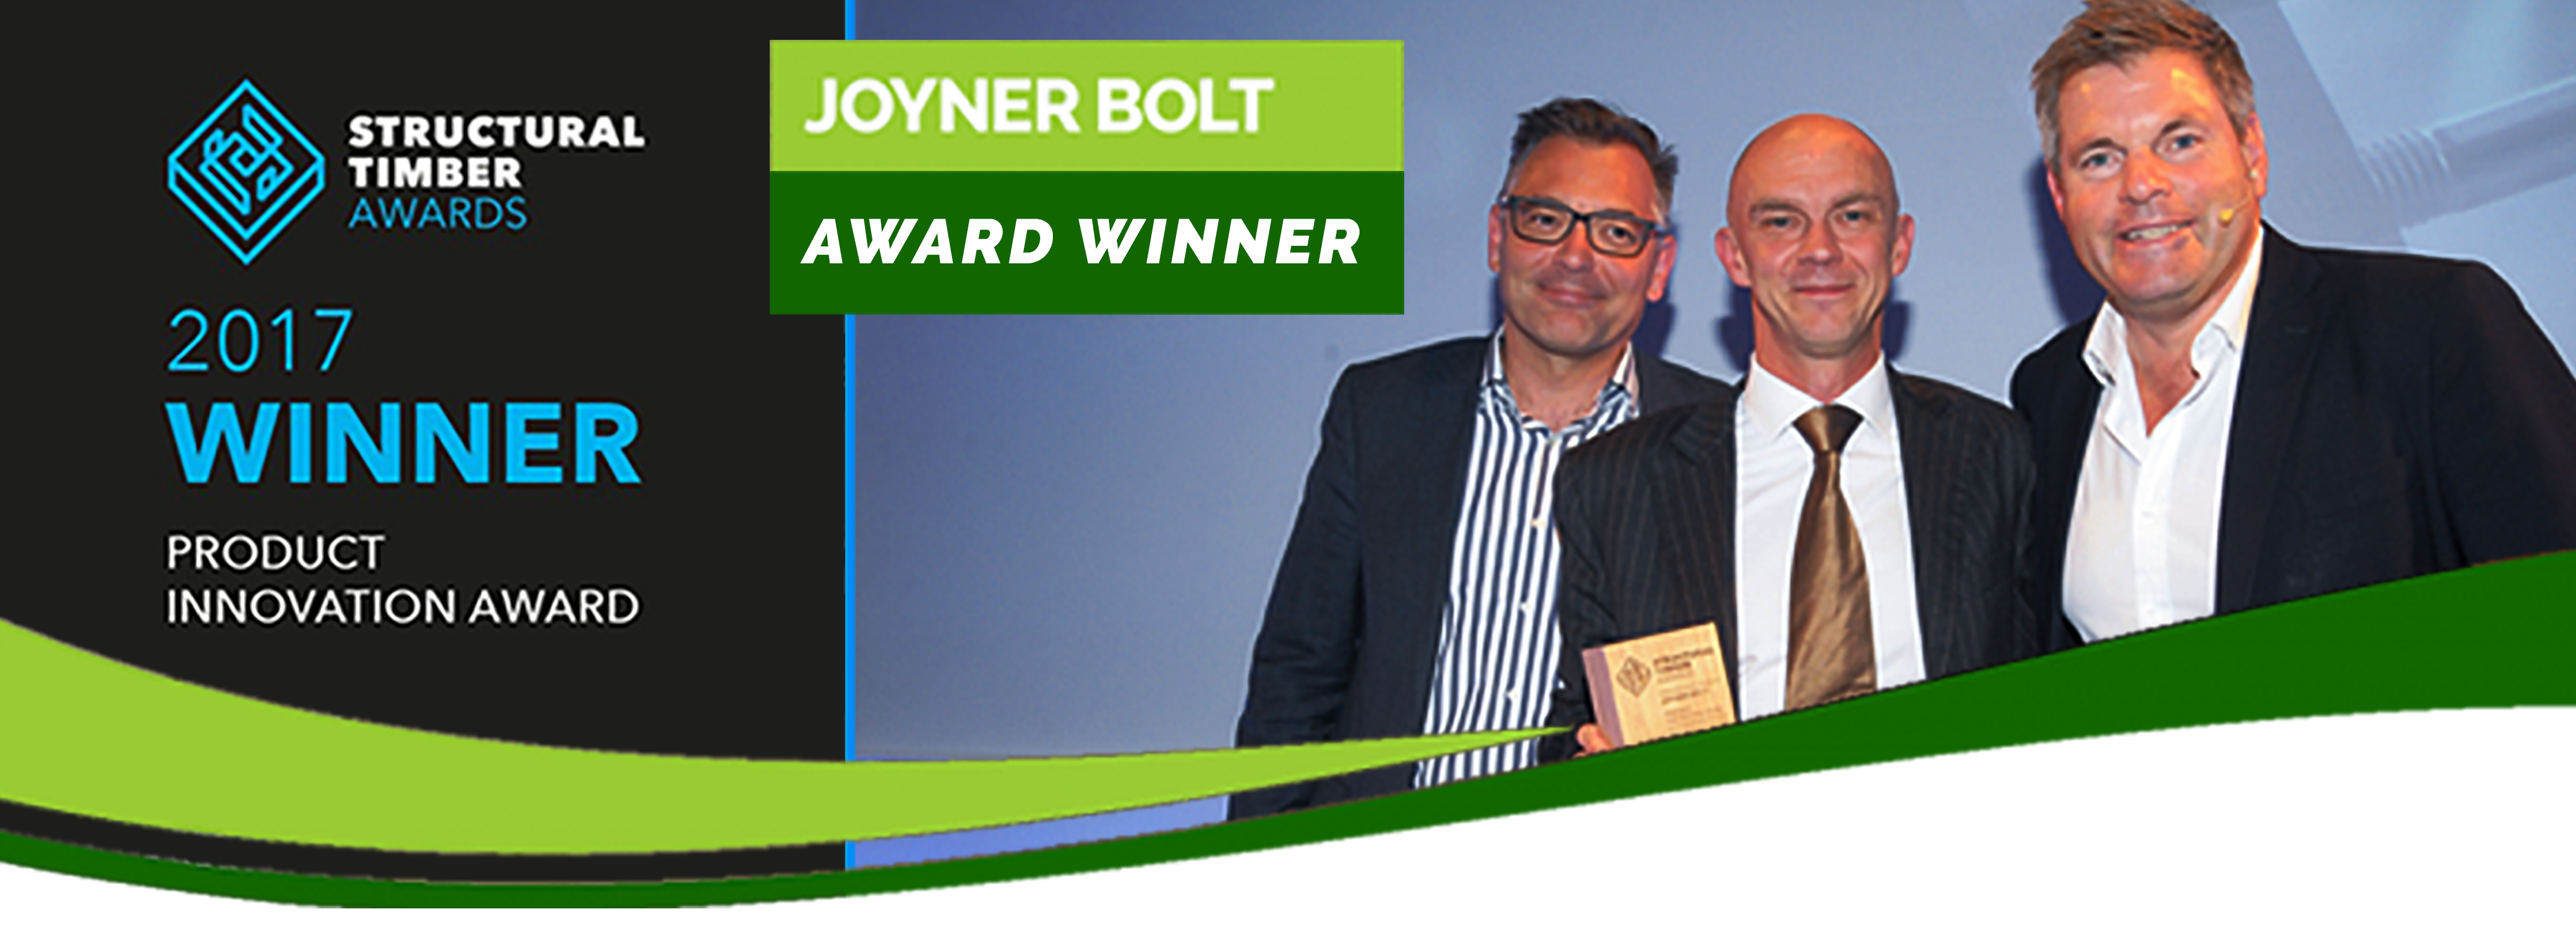 joyner bolt coach bolt alternative award